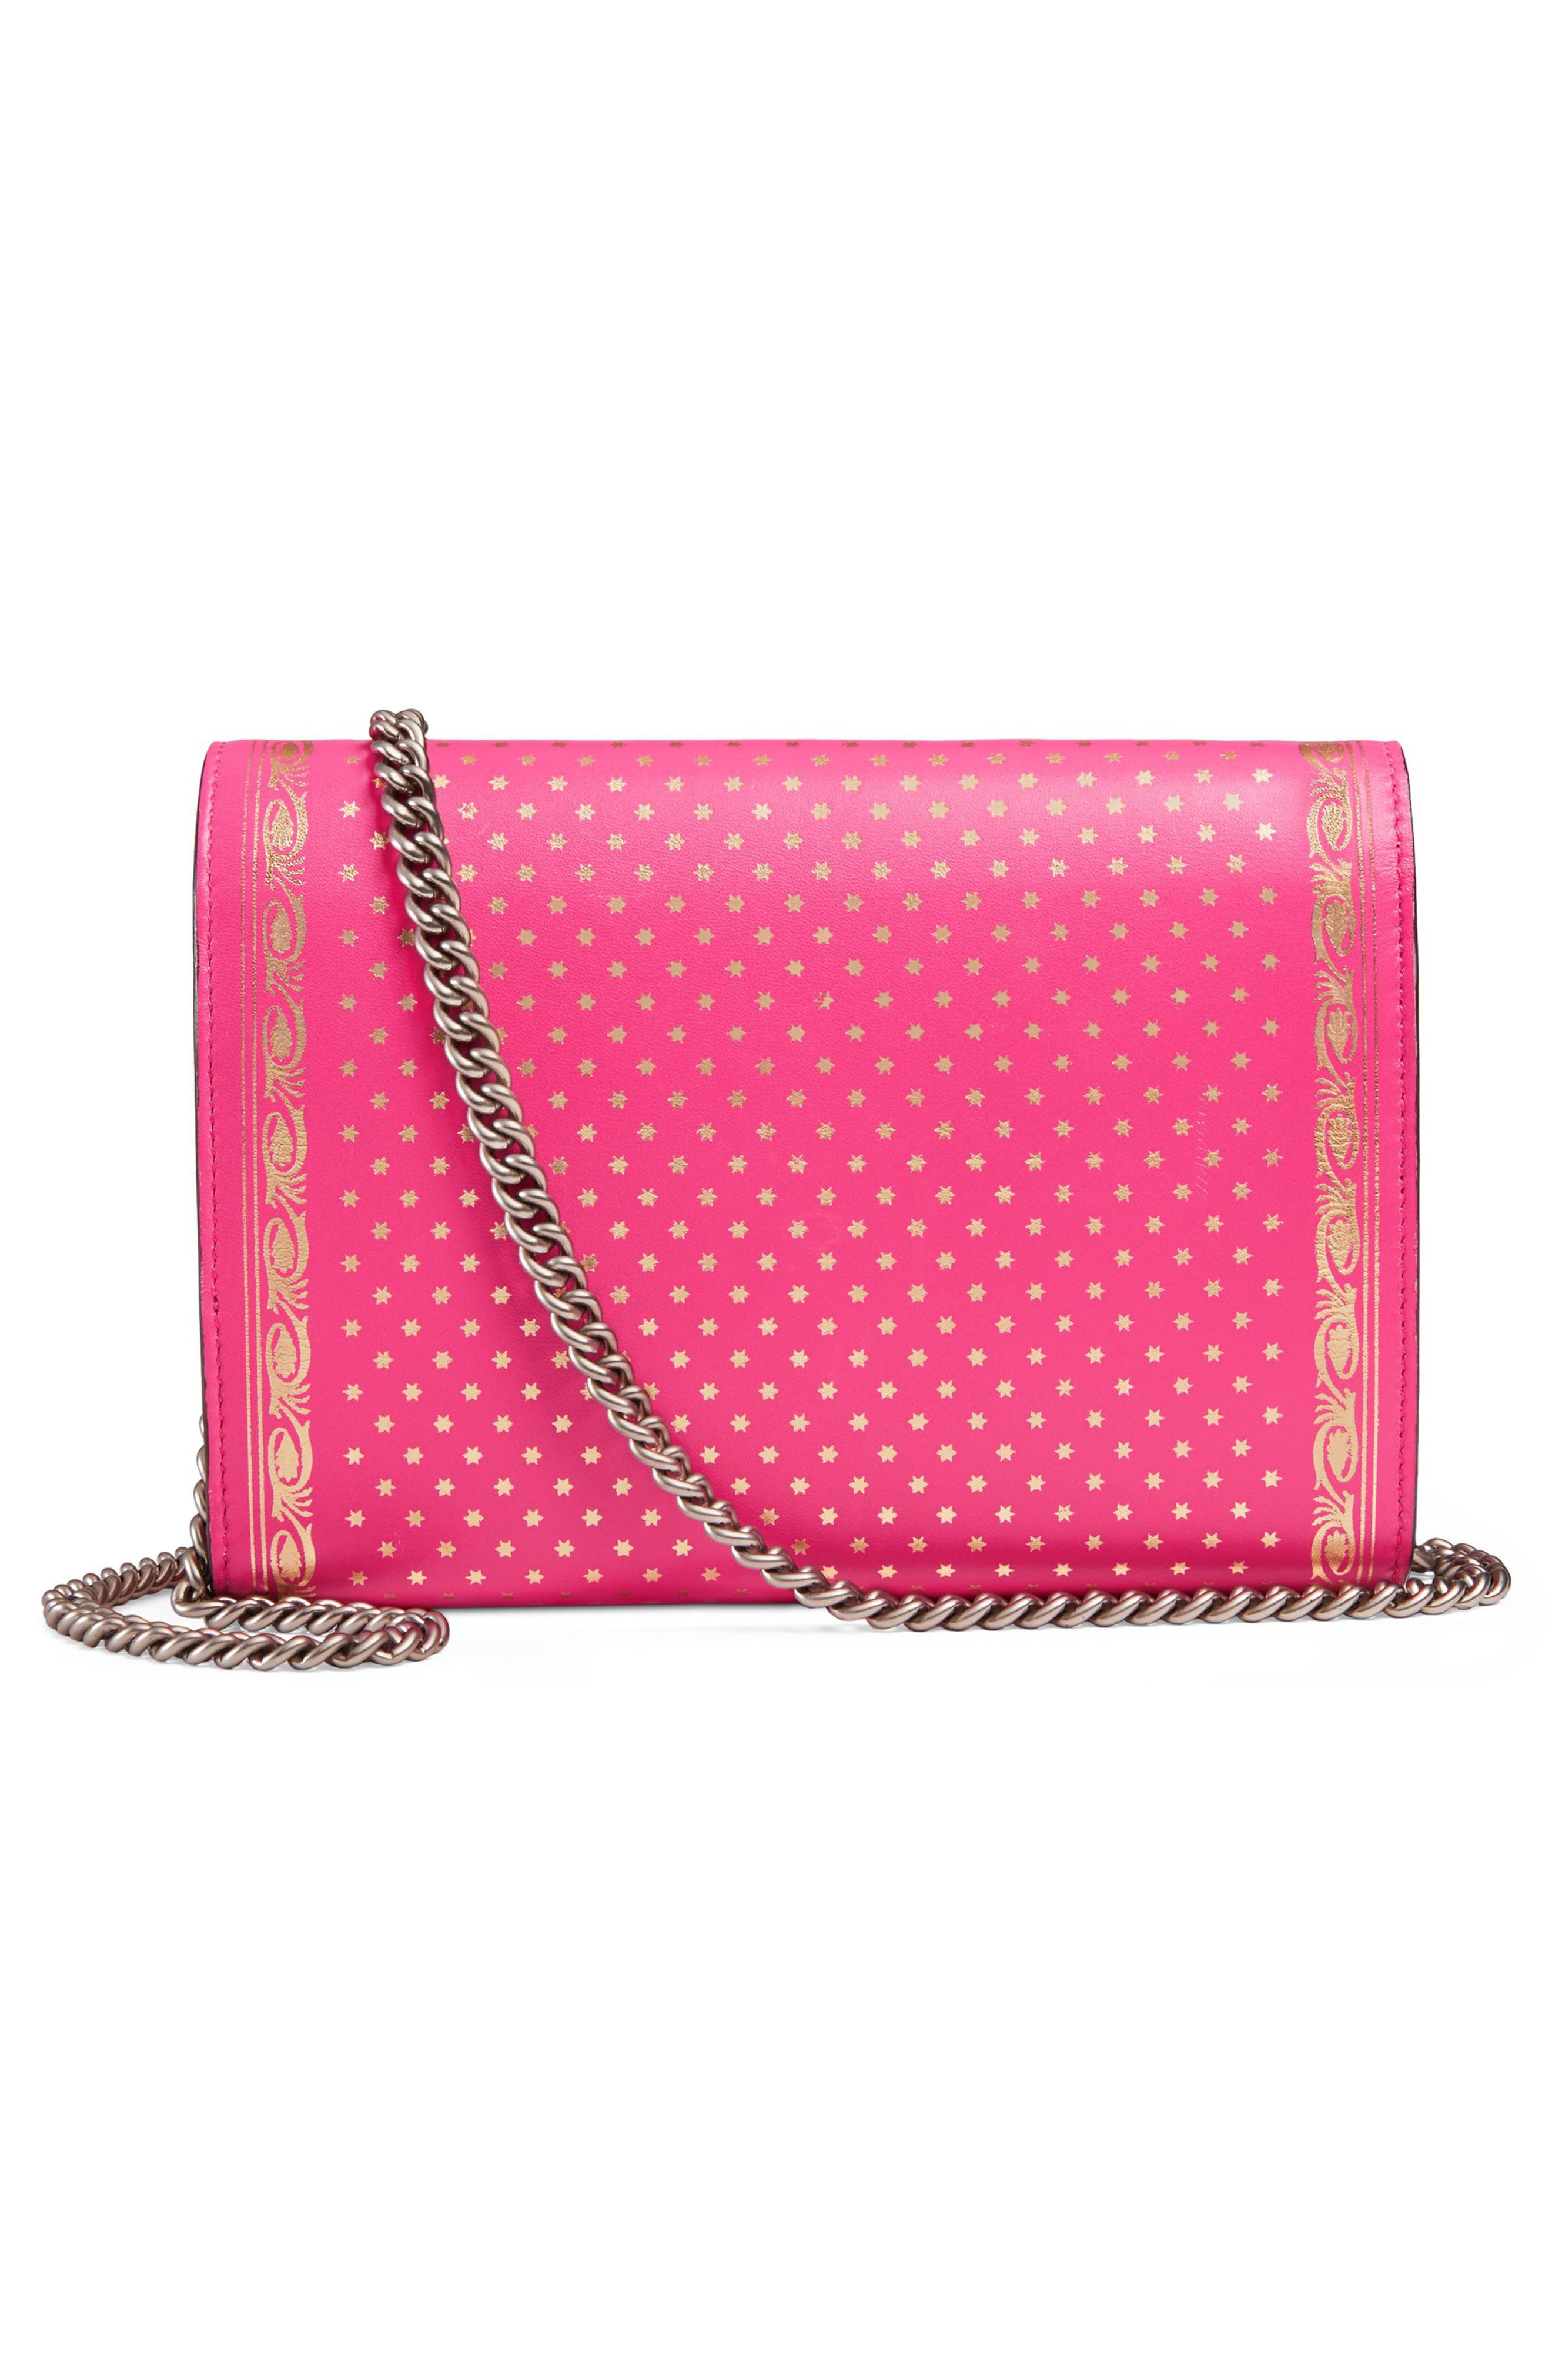 Guccy Logo Moon & Stars Leather Wallet on a Chain,                             Alternate thumbnail 3, color,                             BRIGHT FUCSIA ORO